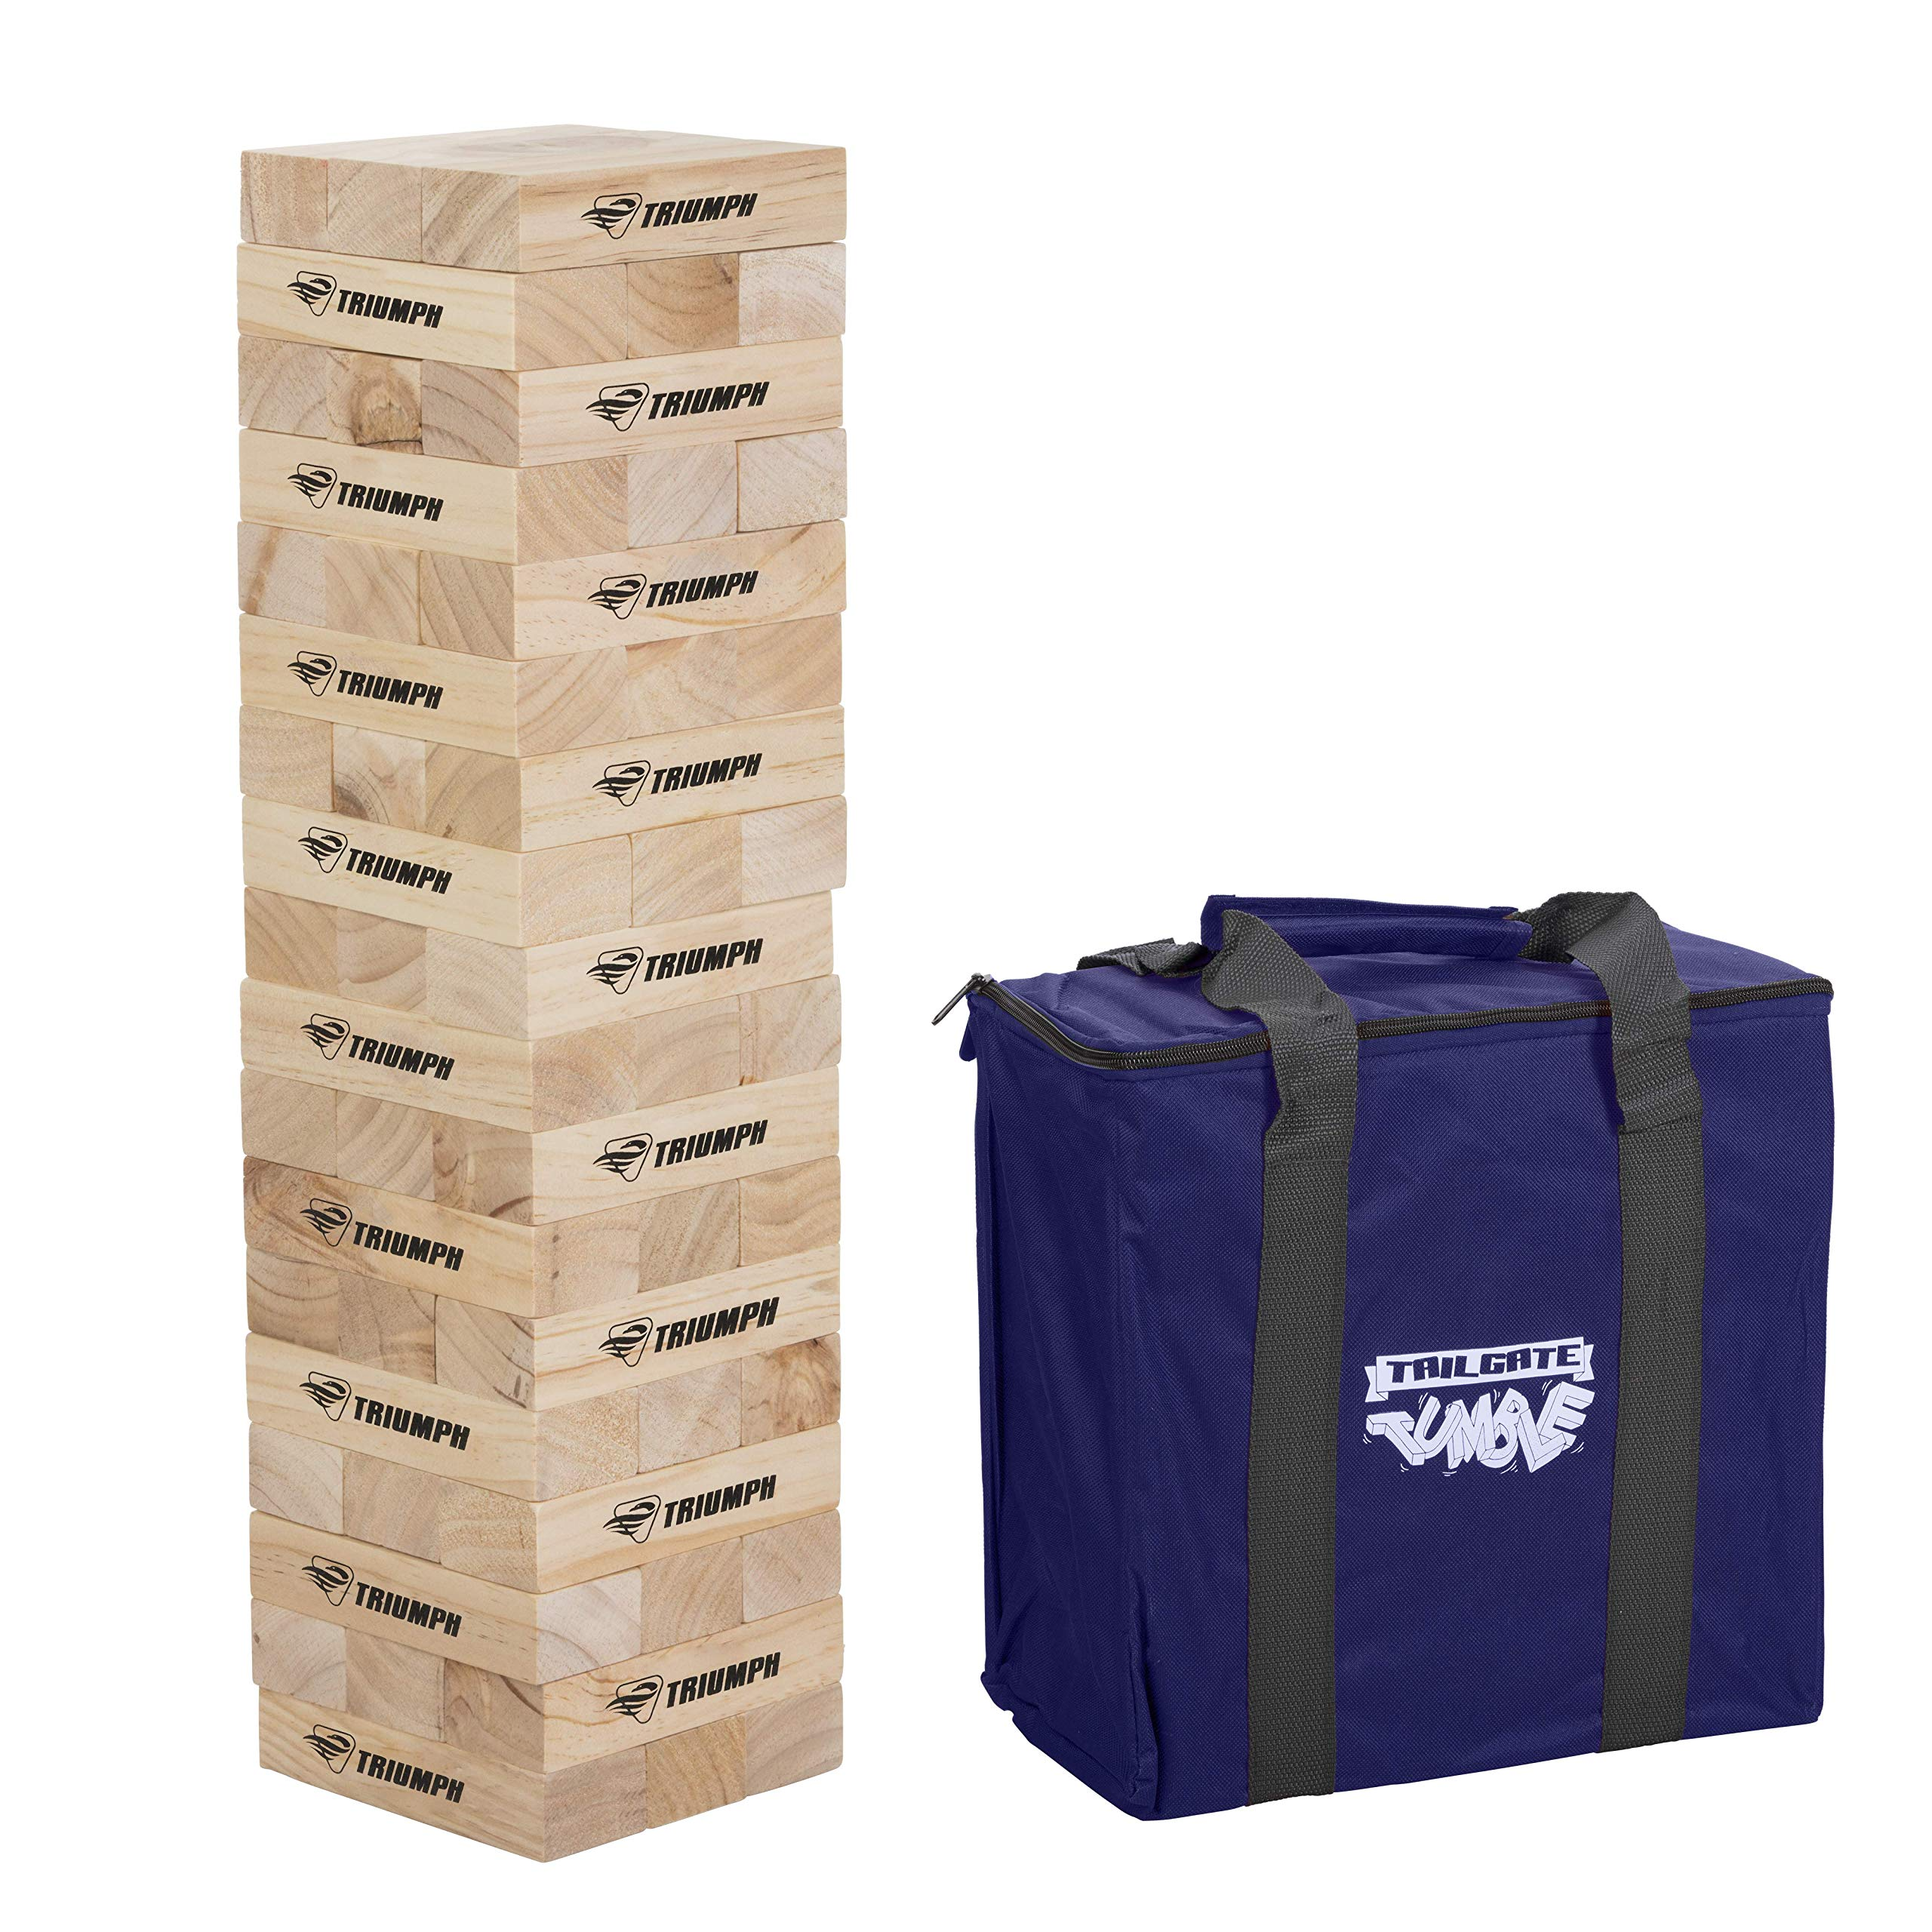 Triumph Fun Size 54 Tumble Strong Stacking Wooden Blocks for Game Nights with Family and Friends by Triumph Sports